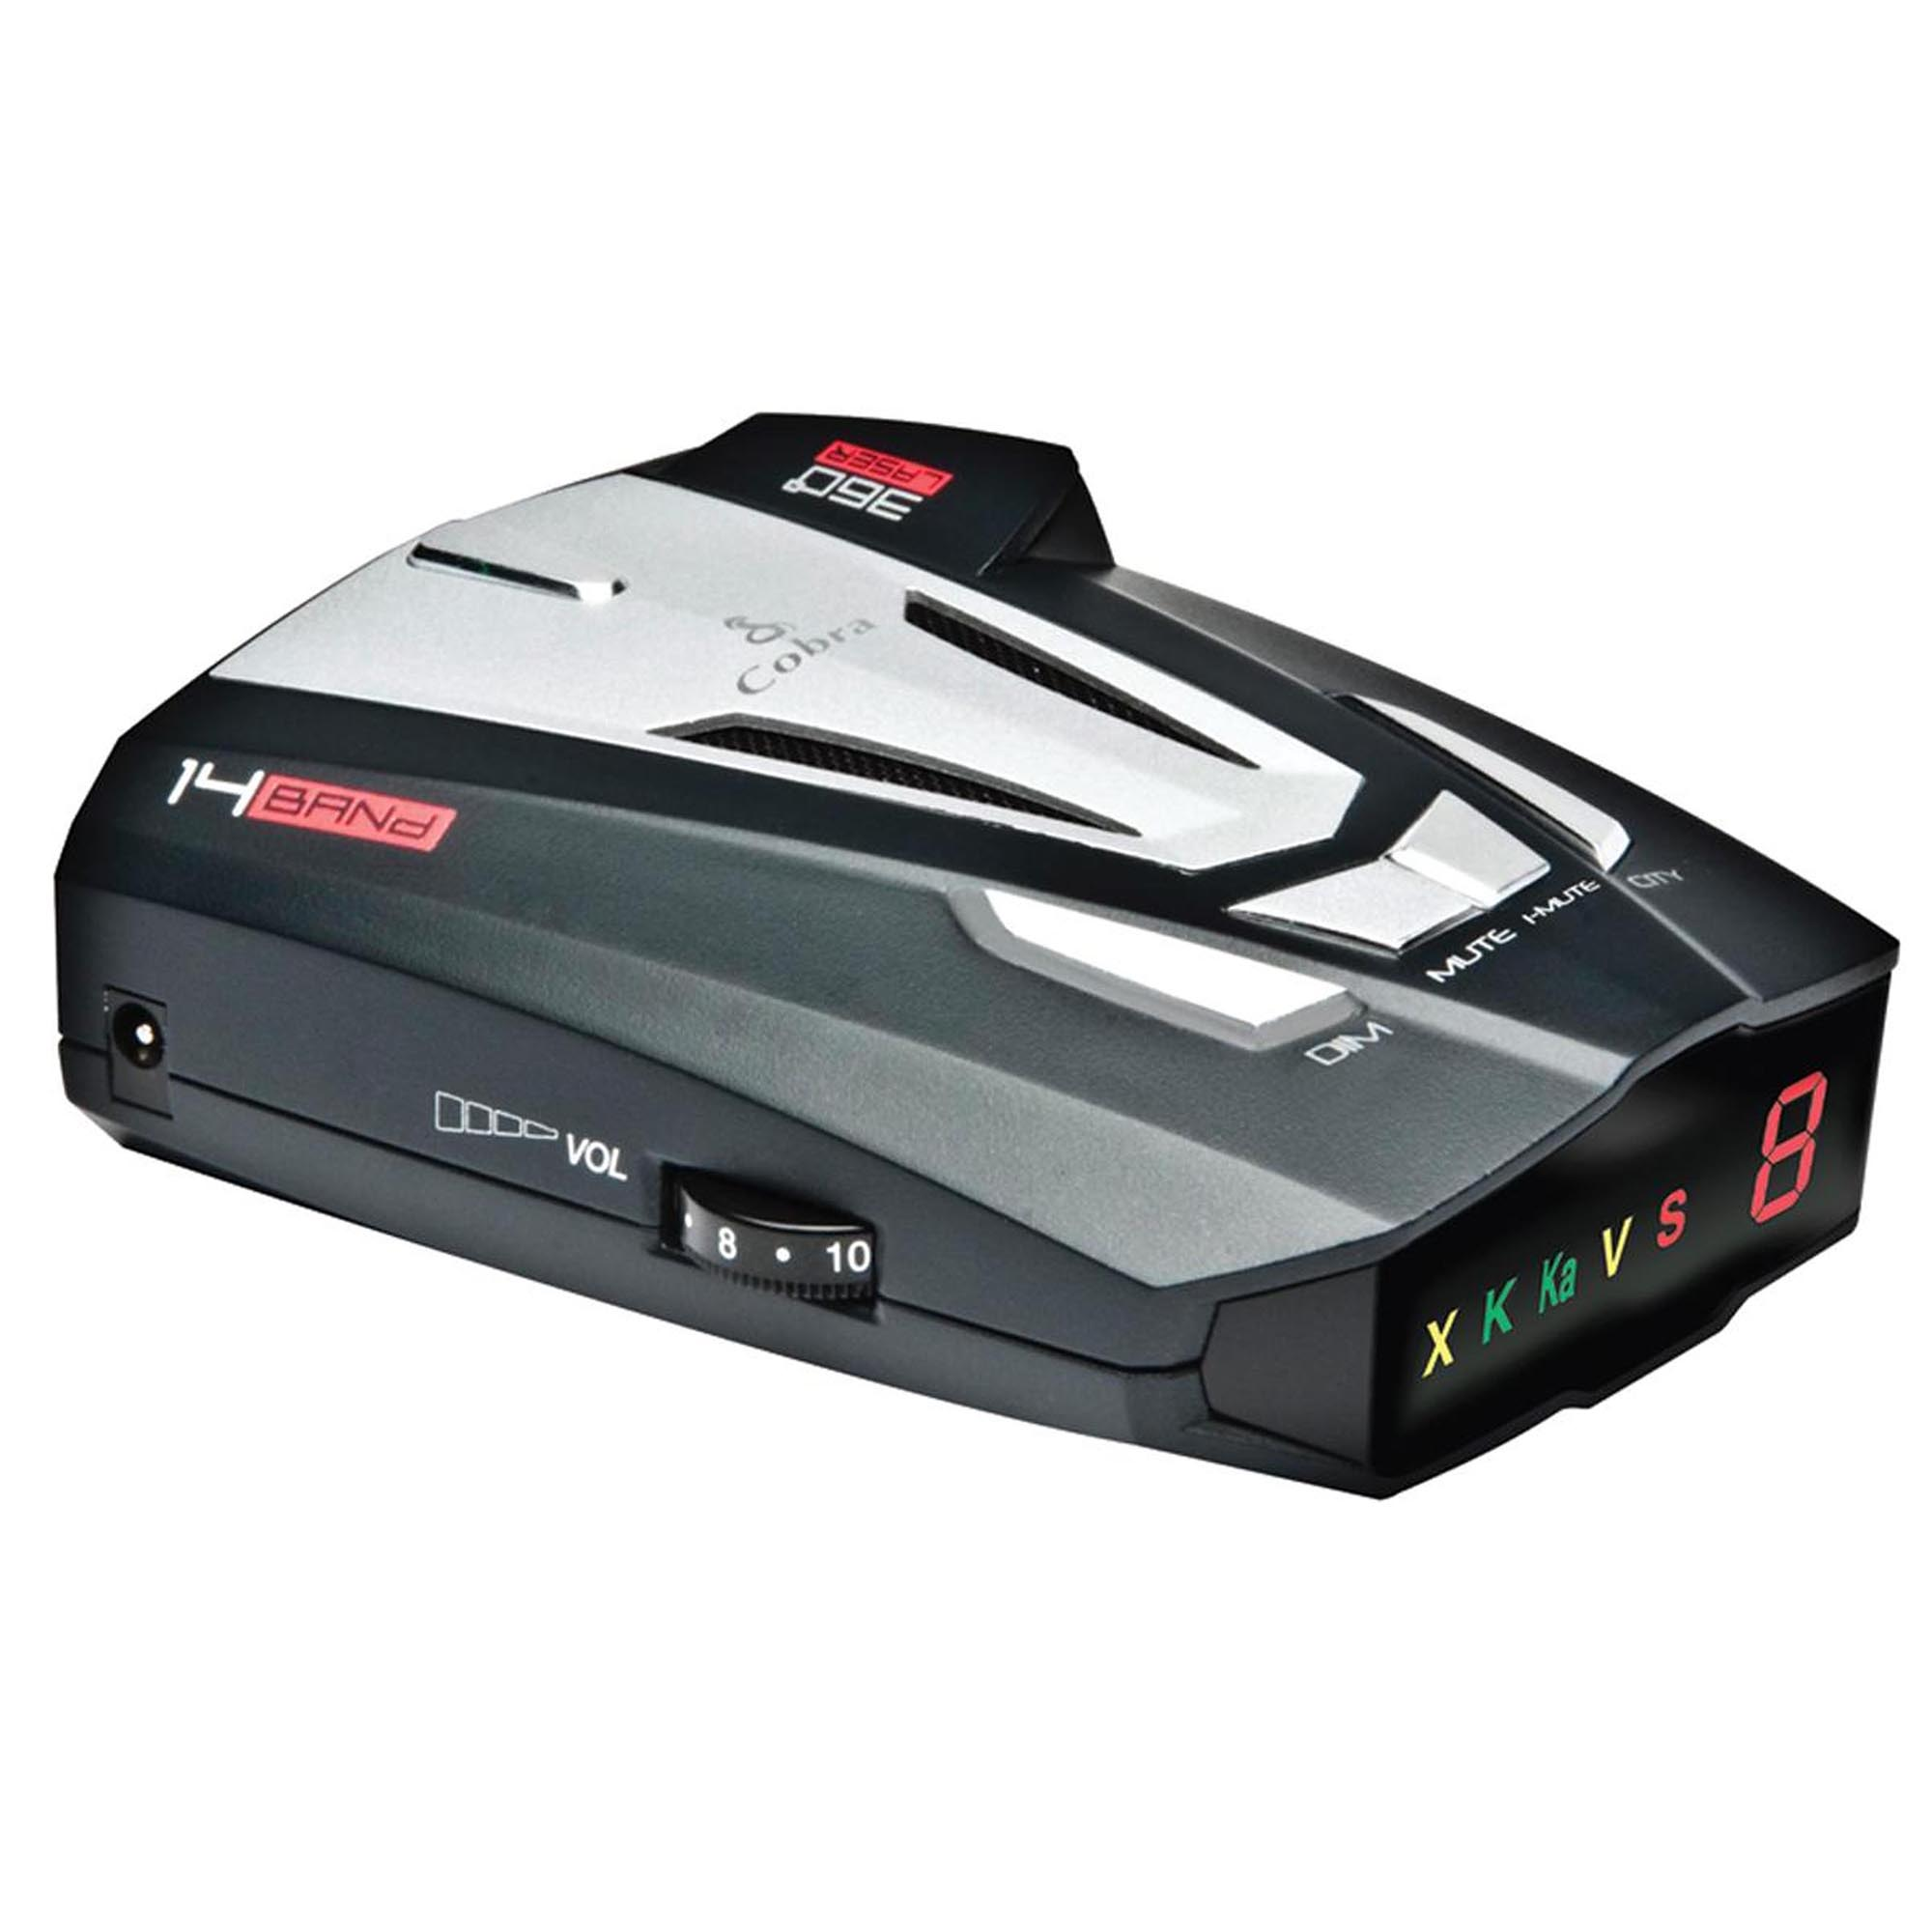 Cobra XRS-9370 High Performance Digital Radar/Laser Detector with UltraBright Data Display